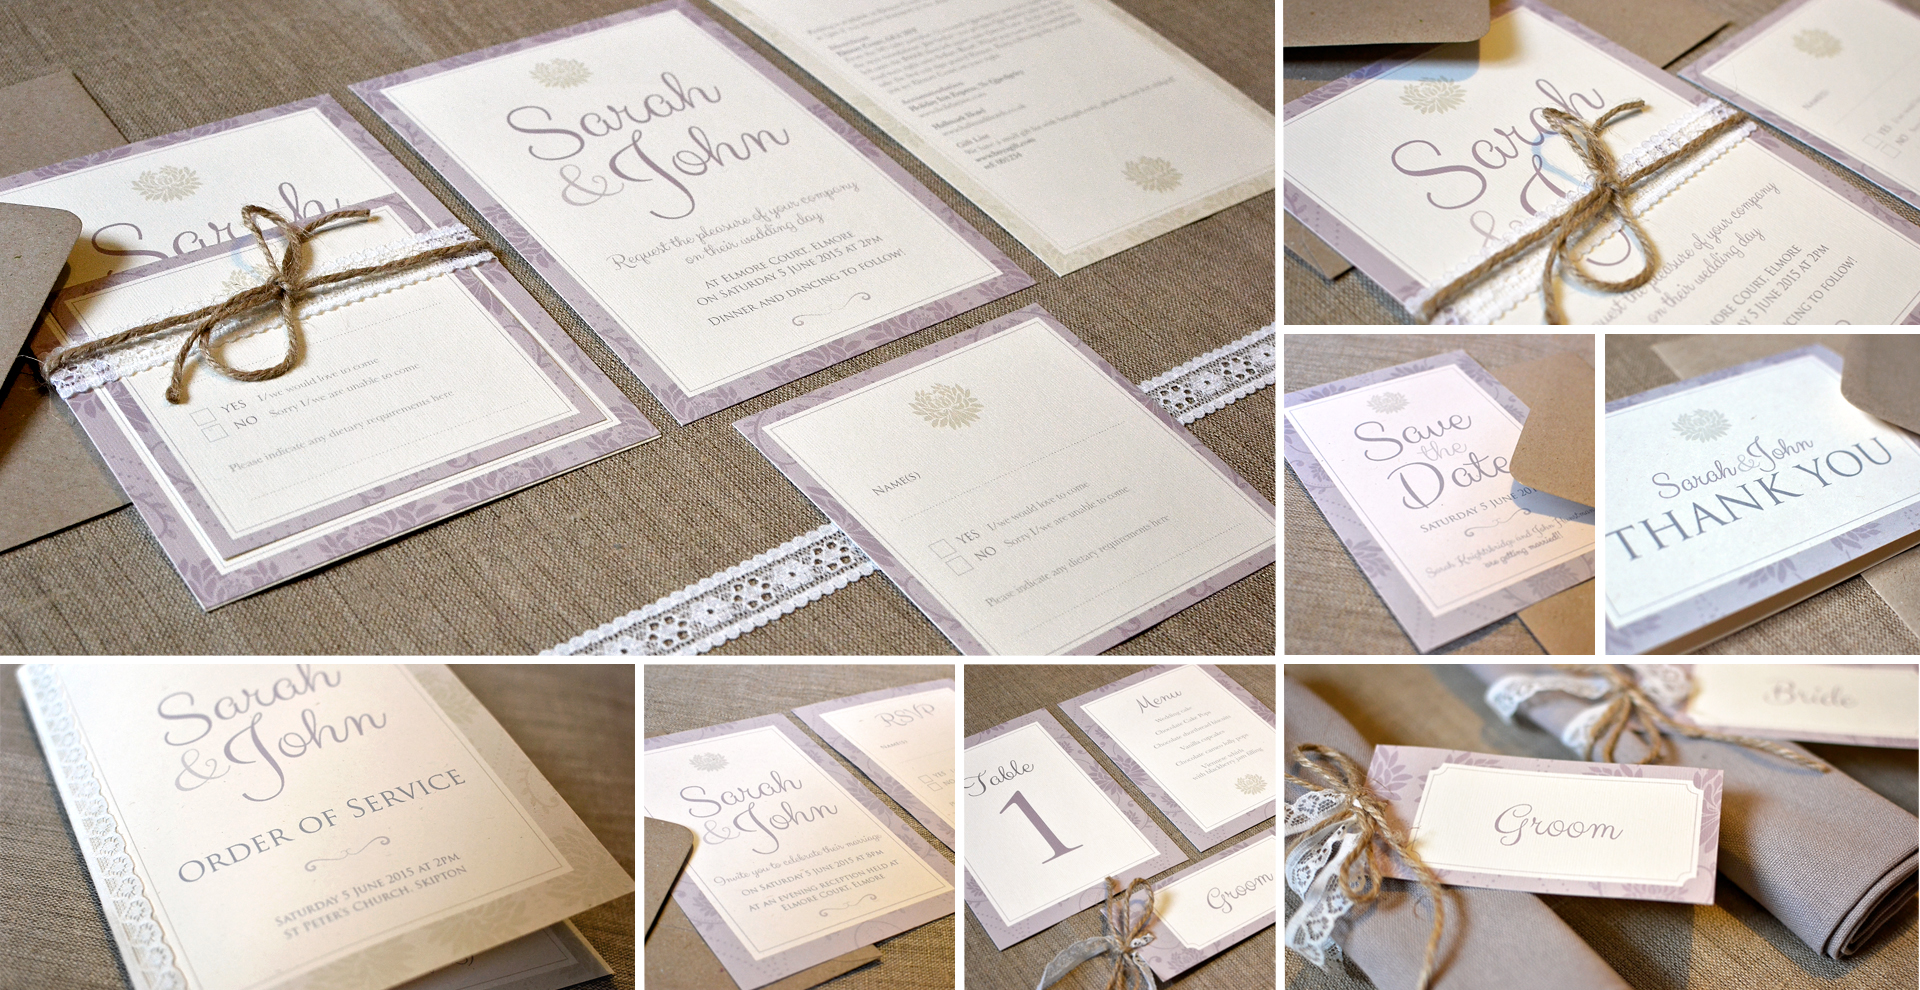 Vintage wedding invitation and stationery